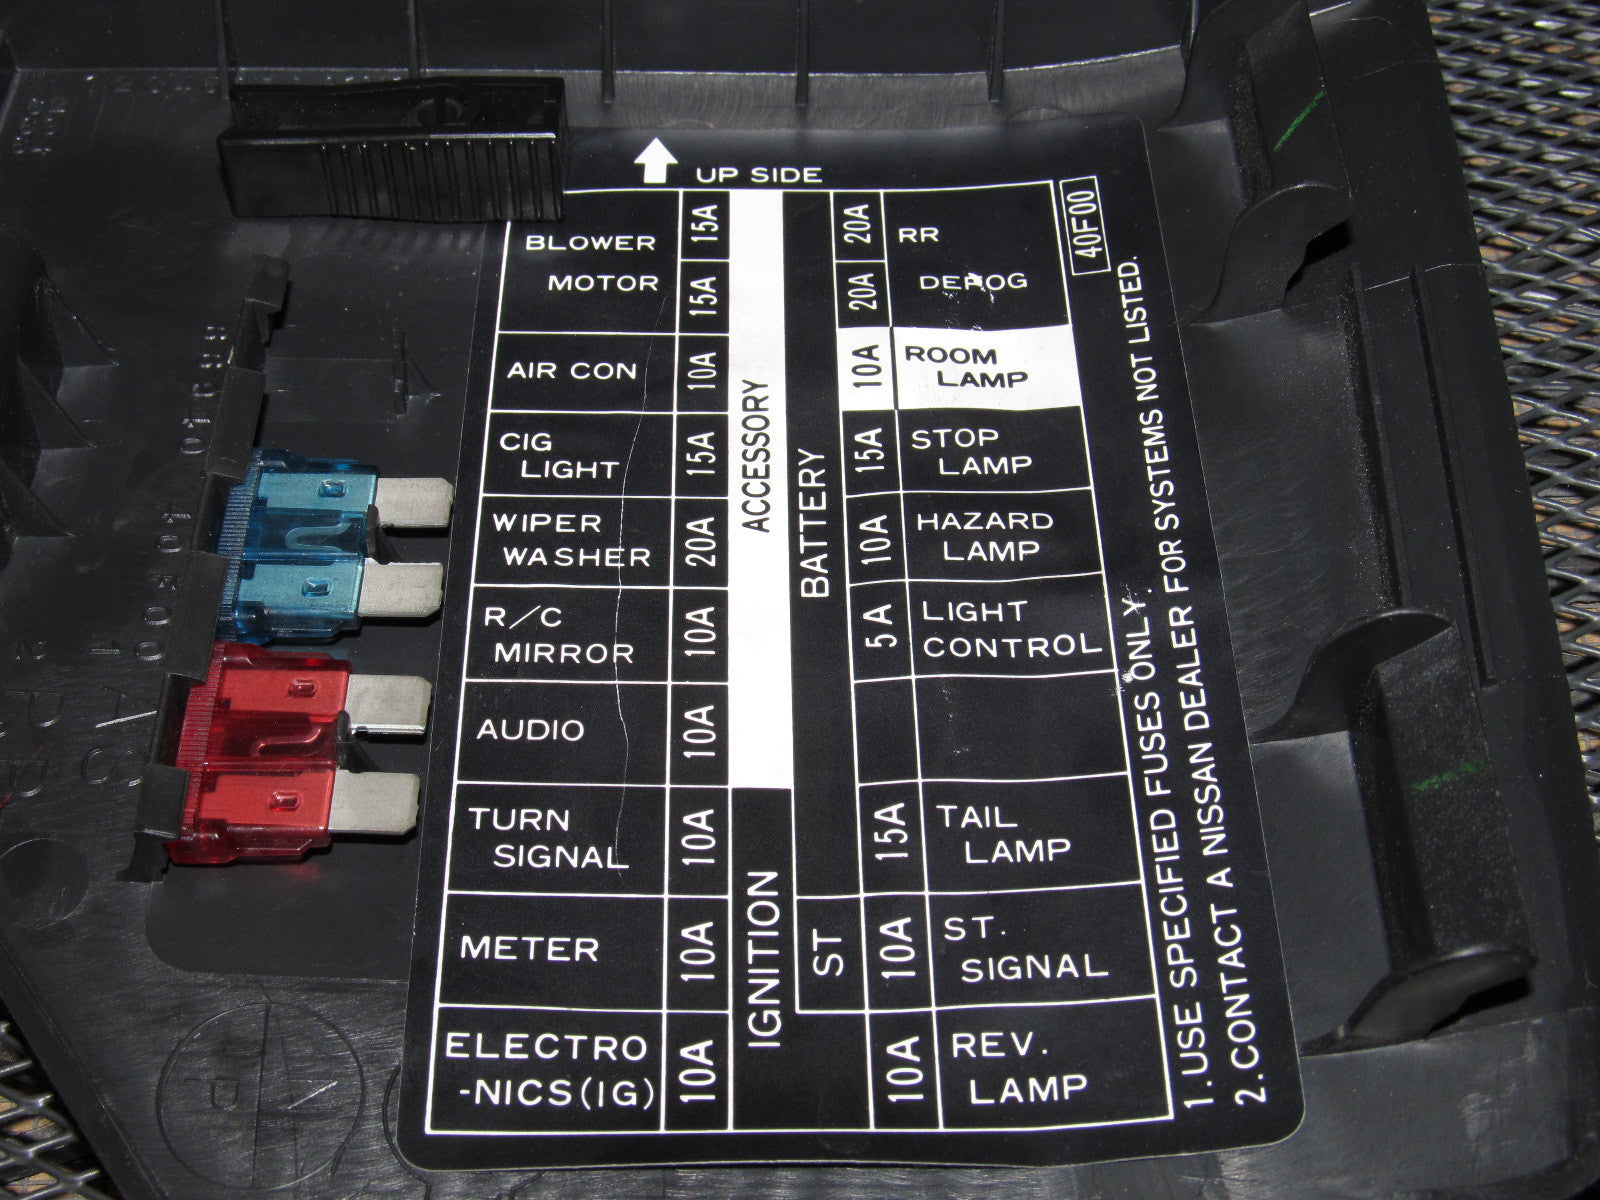 1990 Nissan 300zx Fuse Box Diagram The Portal And Forum Of Wiring 90 Toyota Camry Third Level Rh 18 4 16 Jacobwinterstein Com Jeep Cherokee